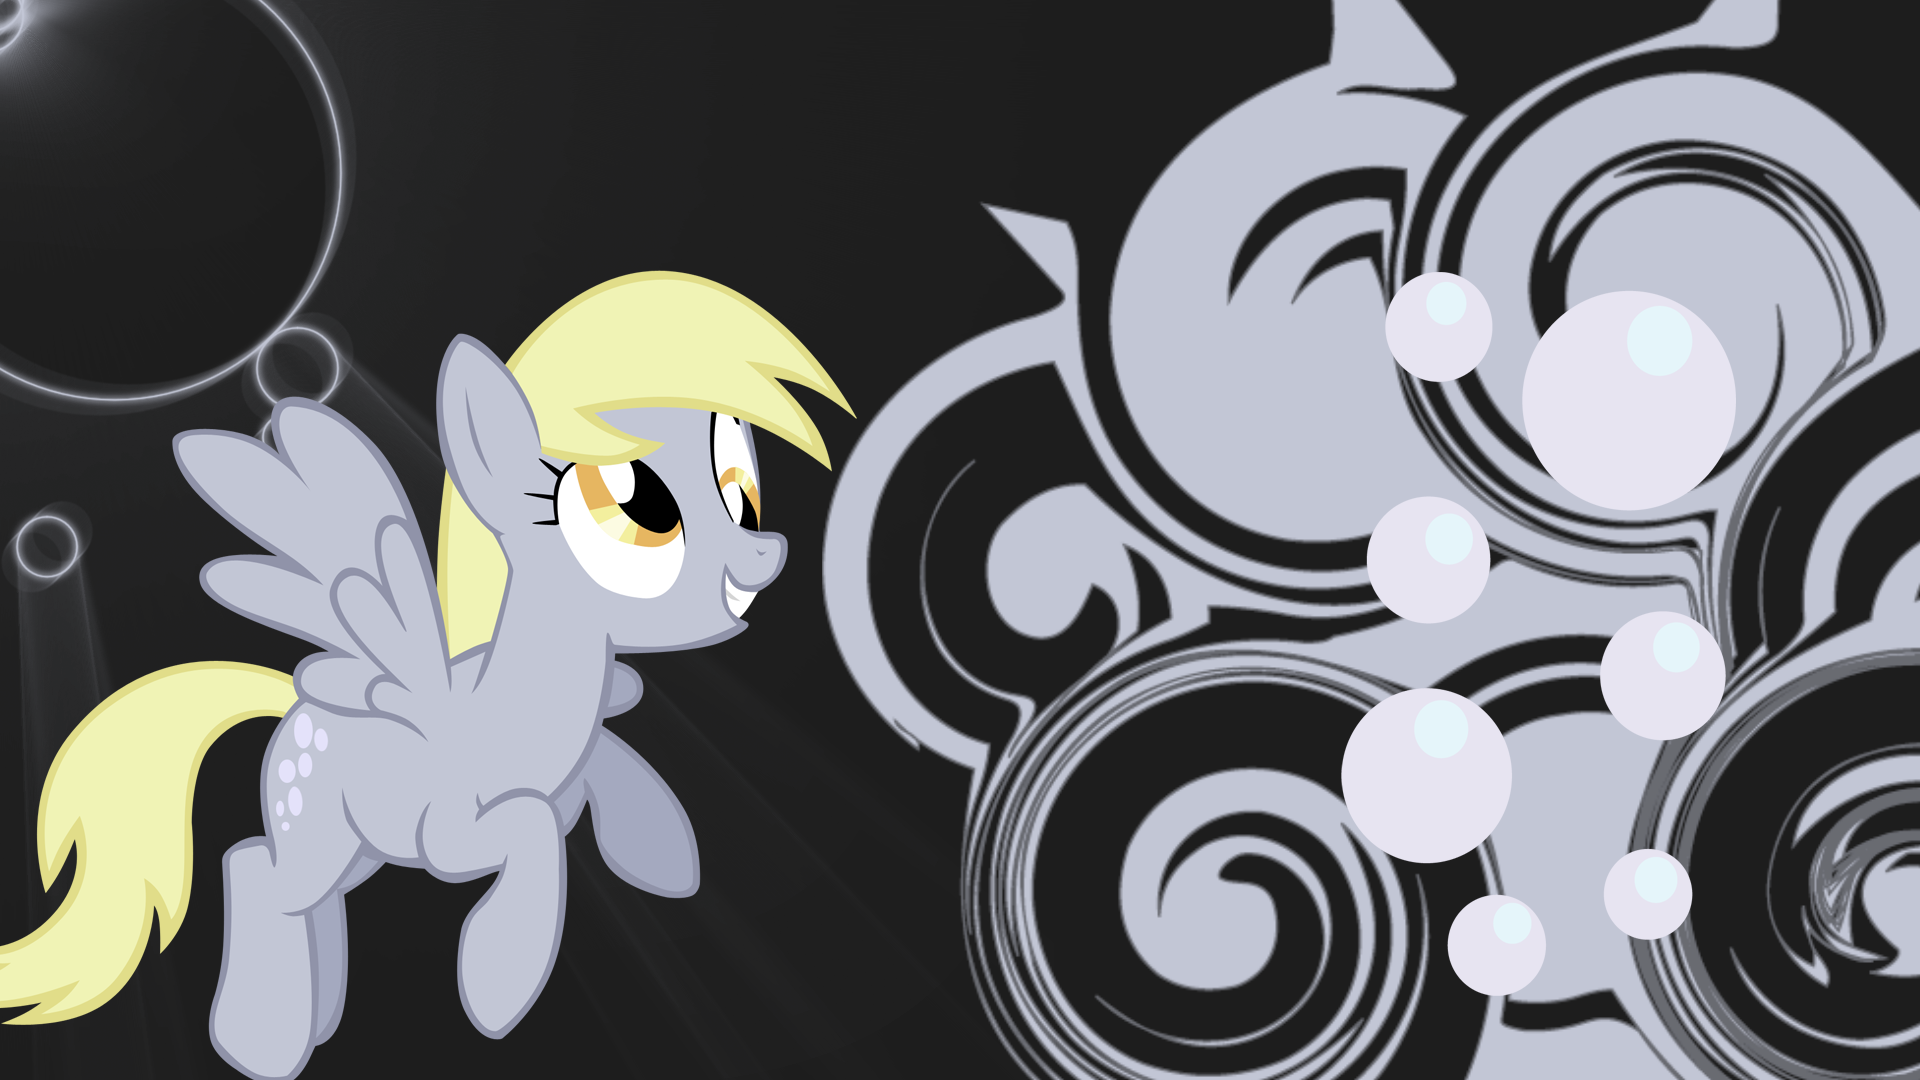 derpy hooves swirl and shine wallpaper by sk8pants d4lzxxd 1920x1080